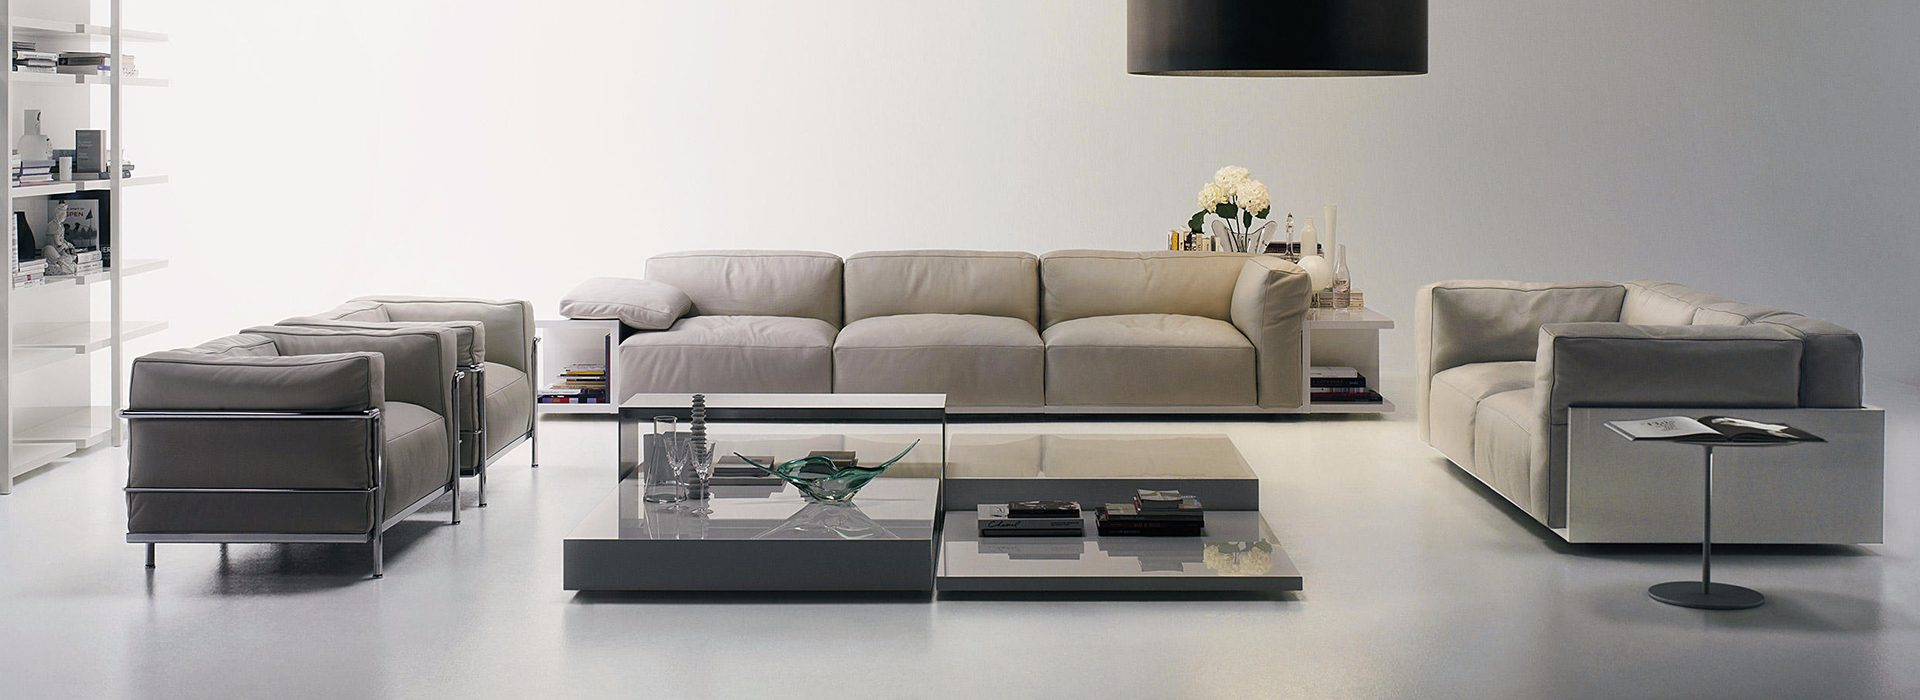 Cassina - Access the best Italian furniture brands, only with Esperiri.